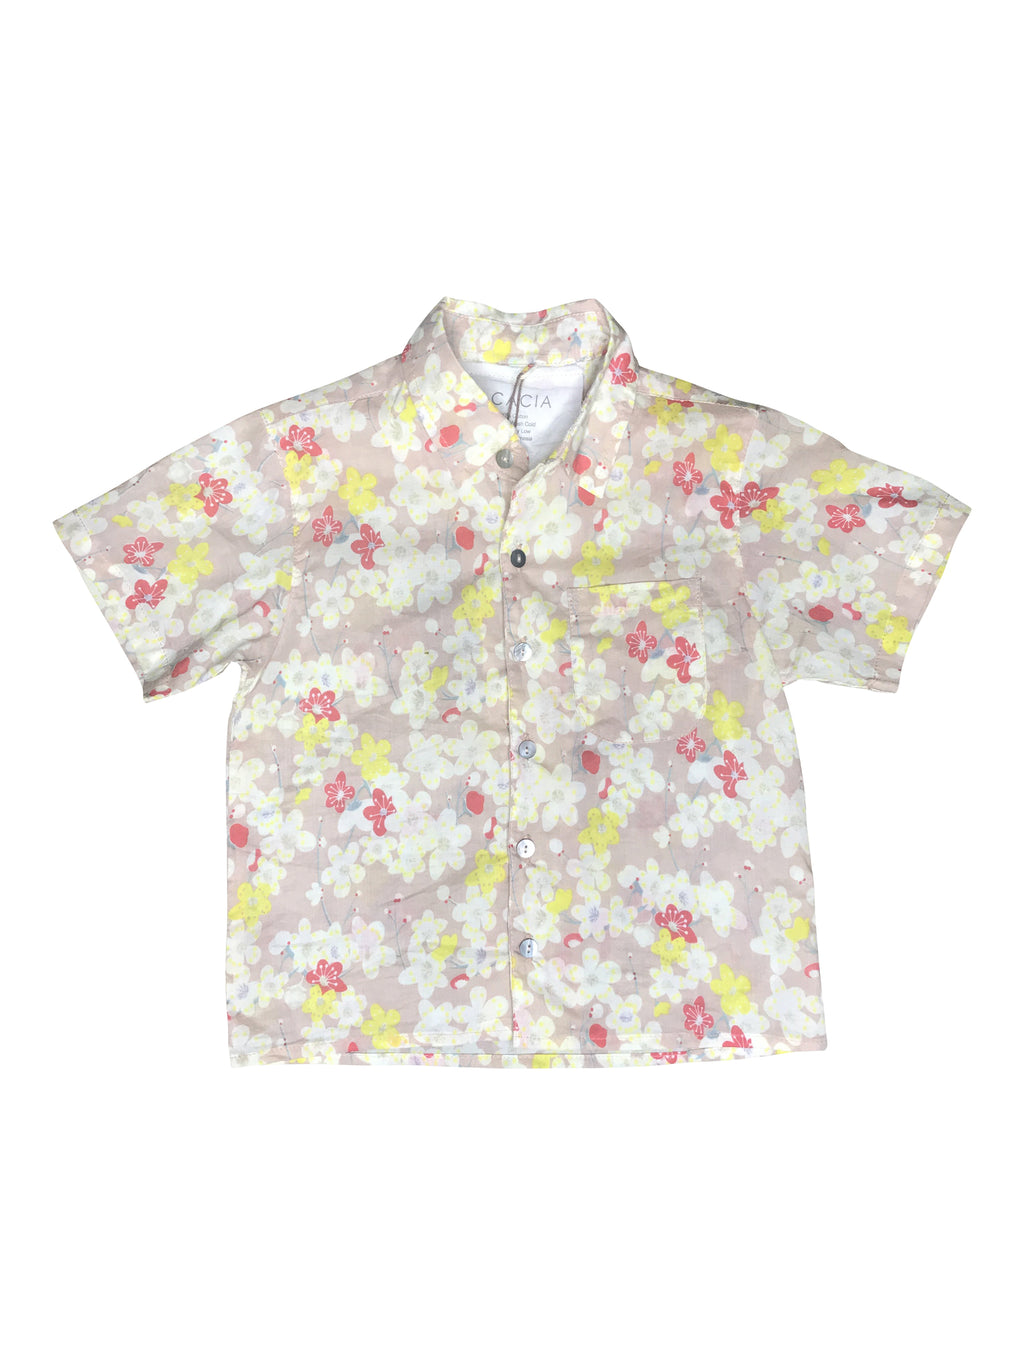 ACACIA KIDS Aloha Shirt | Cherry